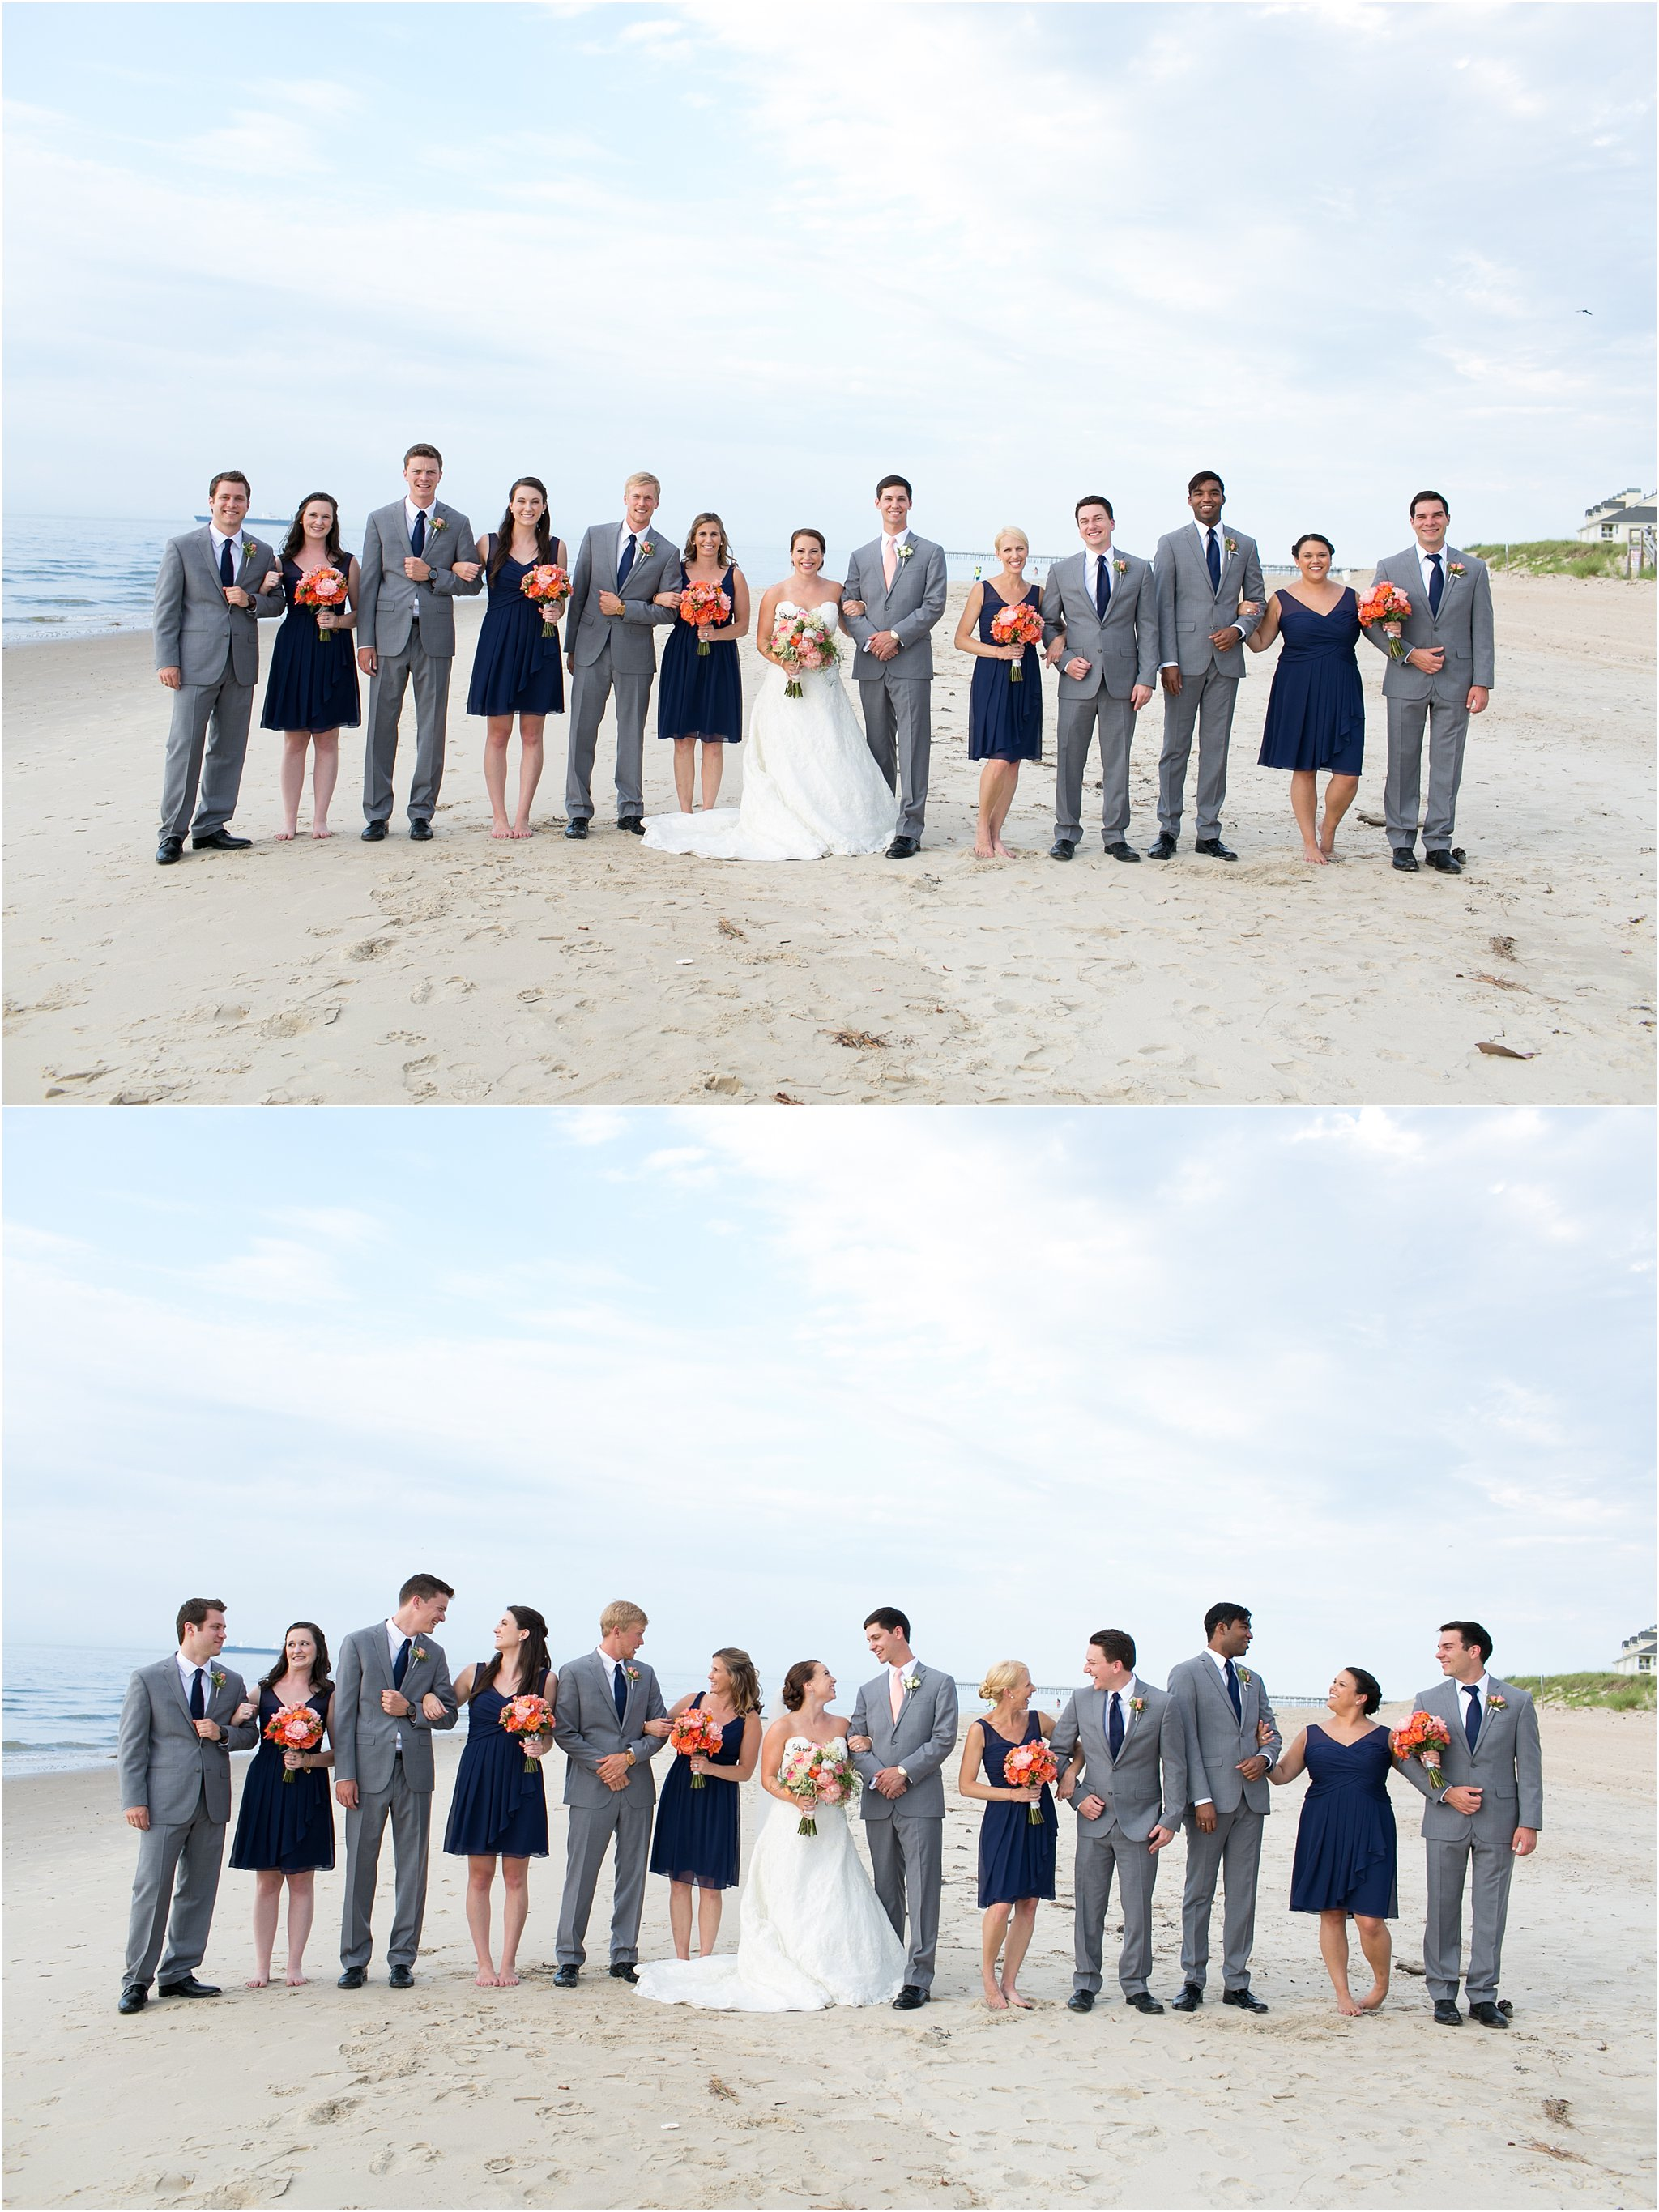 jessica_ryan_photography_wedding_photography_virginiabeach_virginia_candid_authentic_wedding_portraits_marina_shores_yacht_club_chesapeake_bay_1855